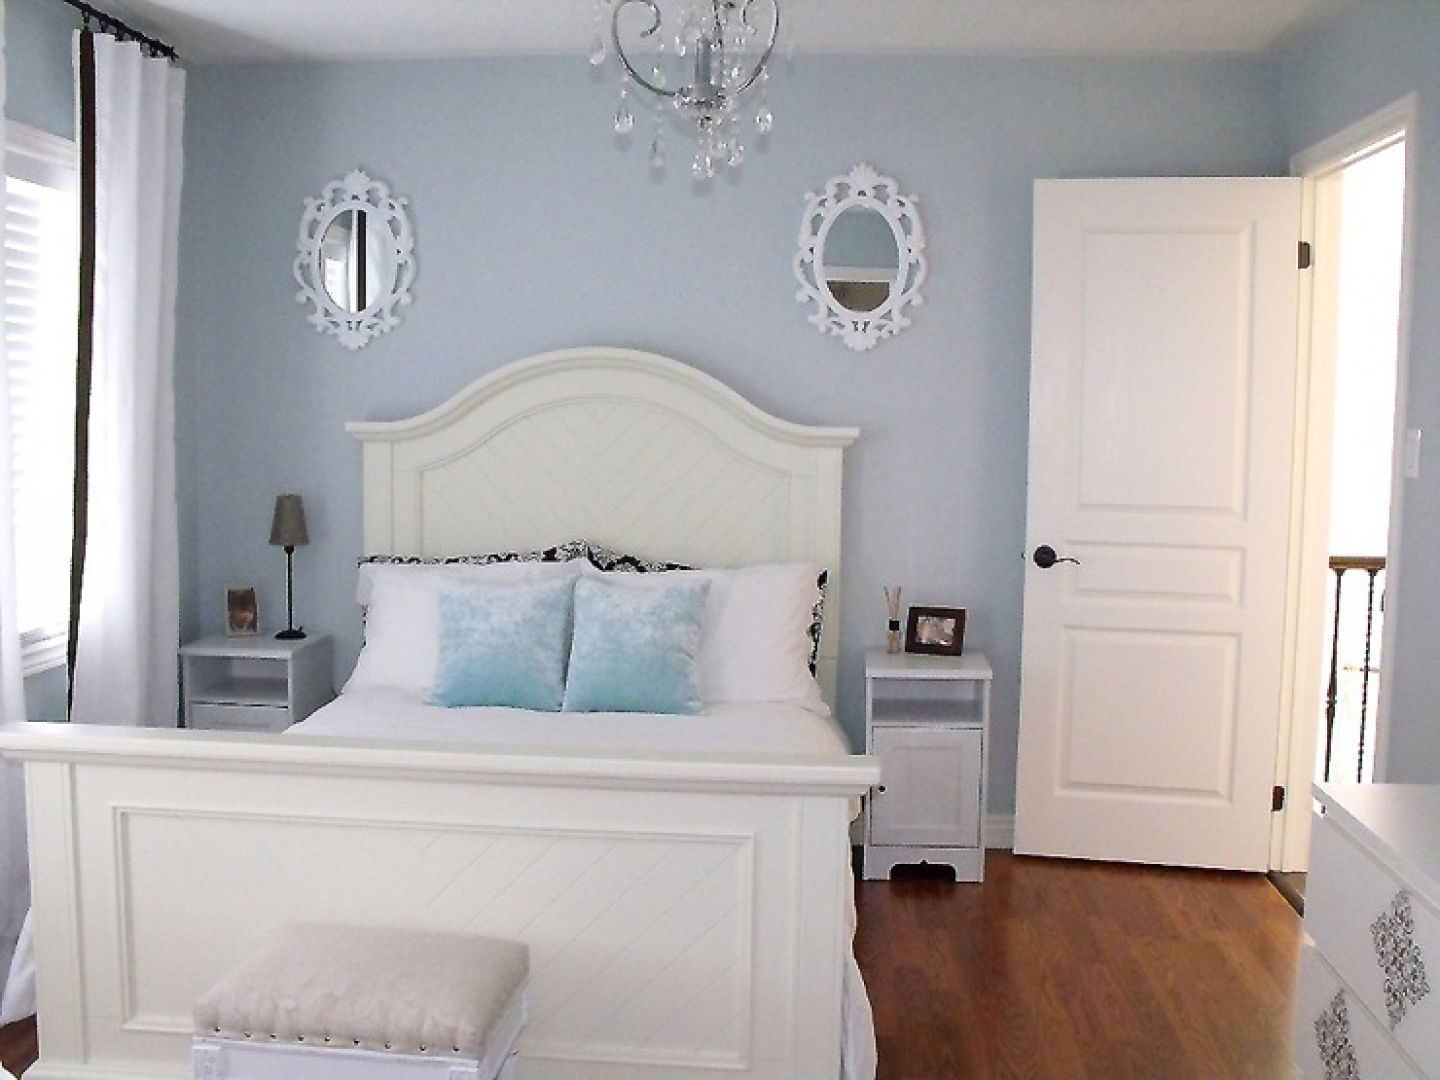 Modern french bedroom decor - Guest Bedroom Paint Design Ideas Paint Is Behr Light French Gray